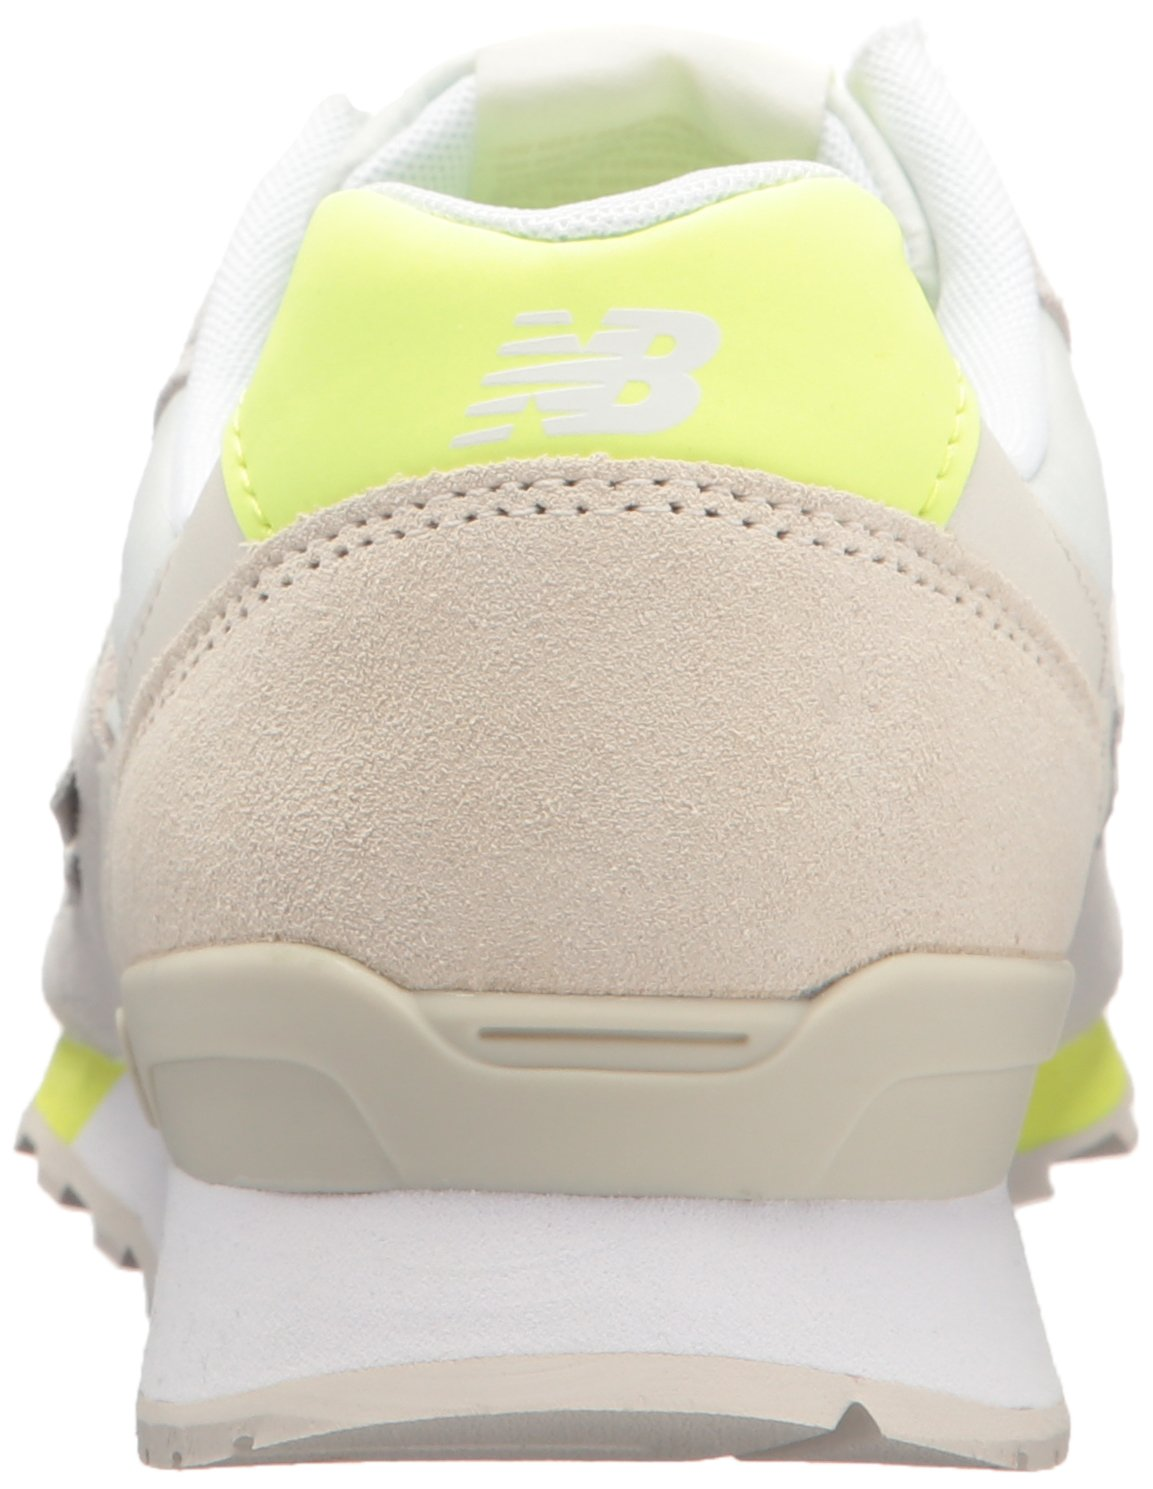 New Balance Women's 696 v1 Sneaker B06XWSP9C4 6.5 B(M) US|Sea Salt/Solar Yellow